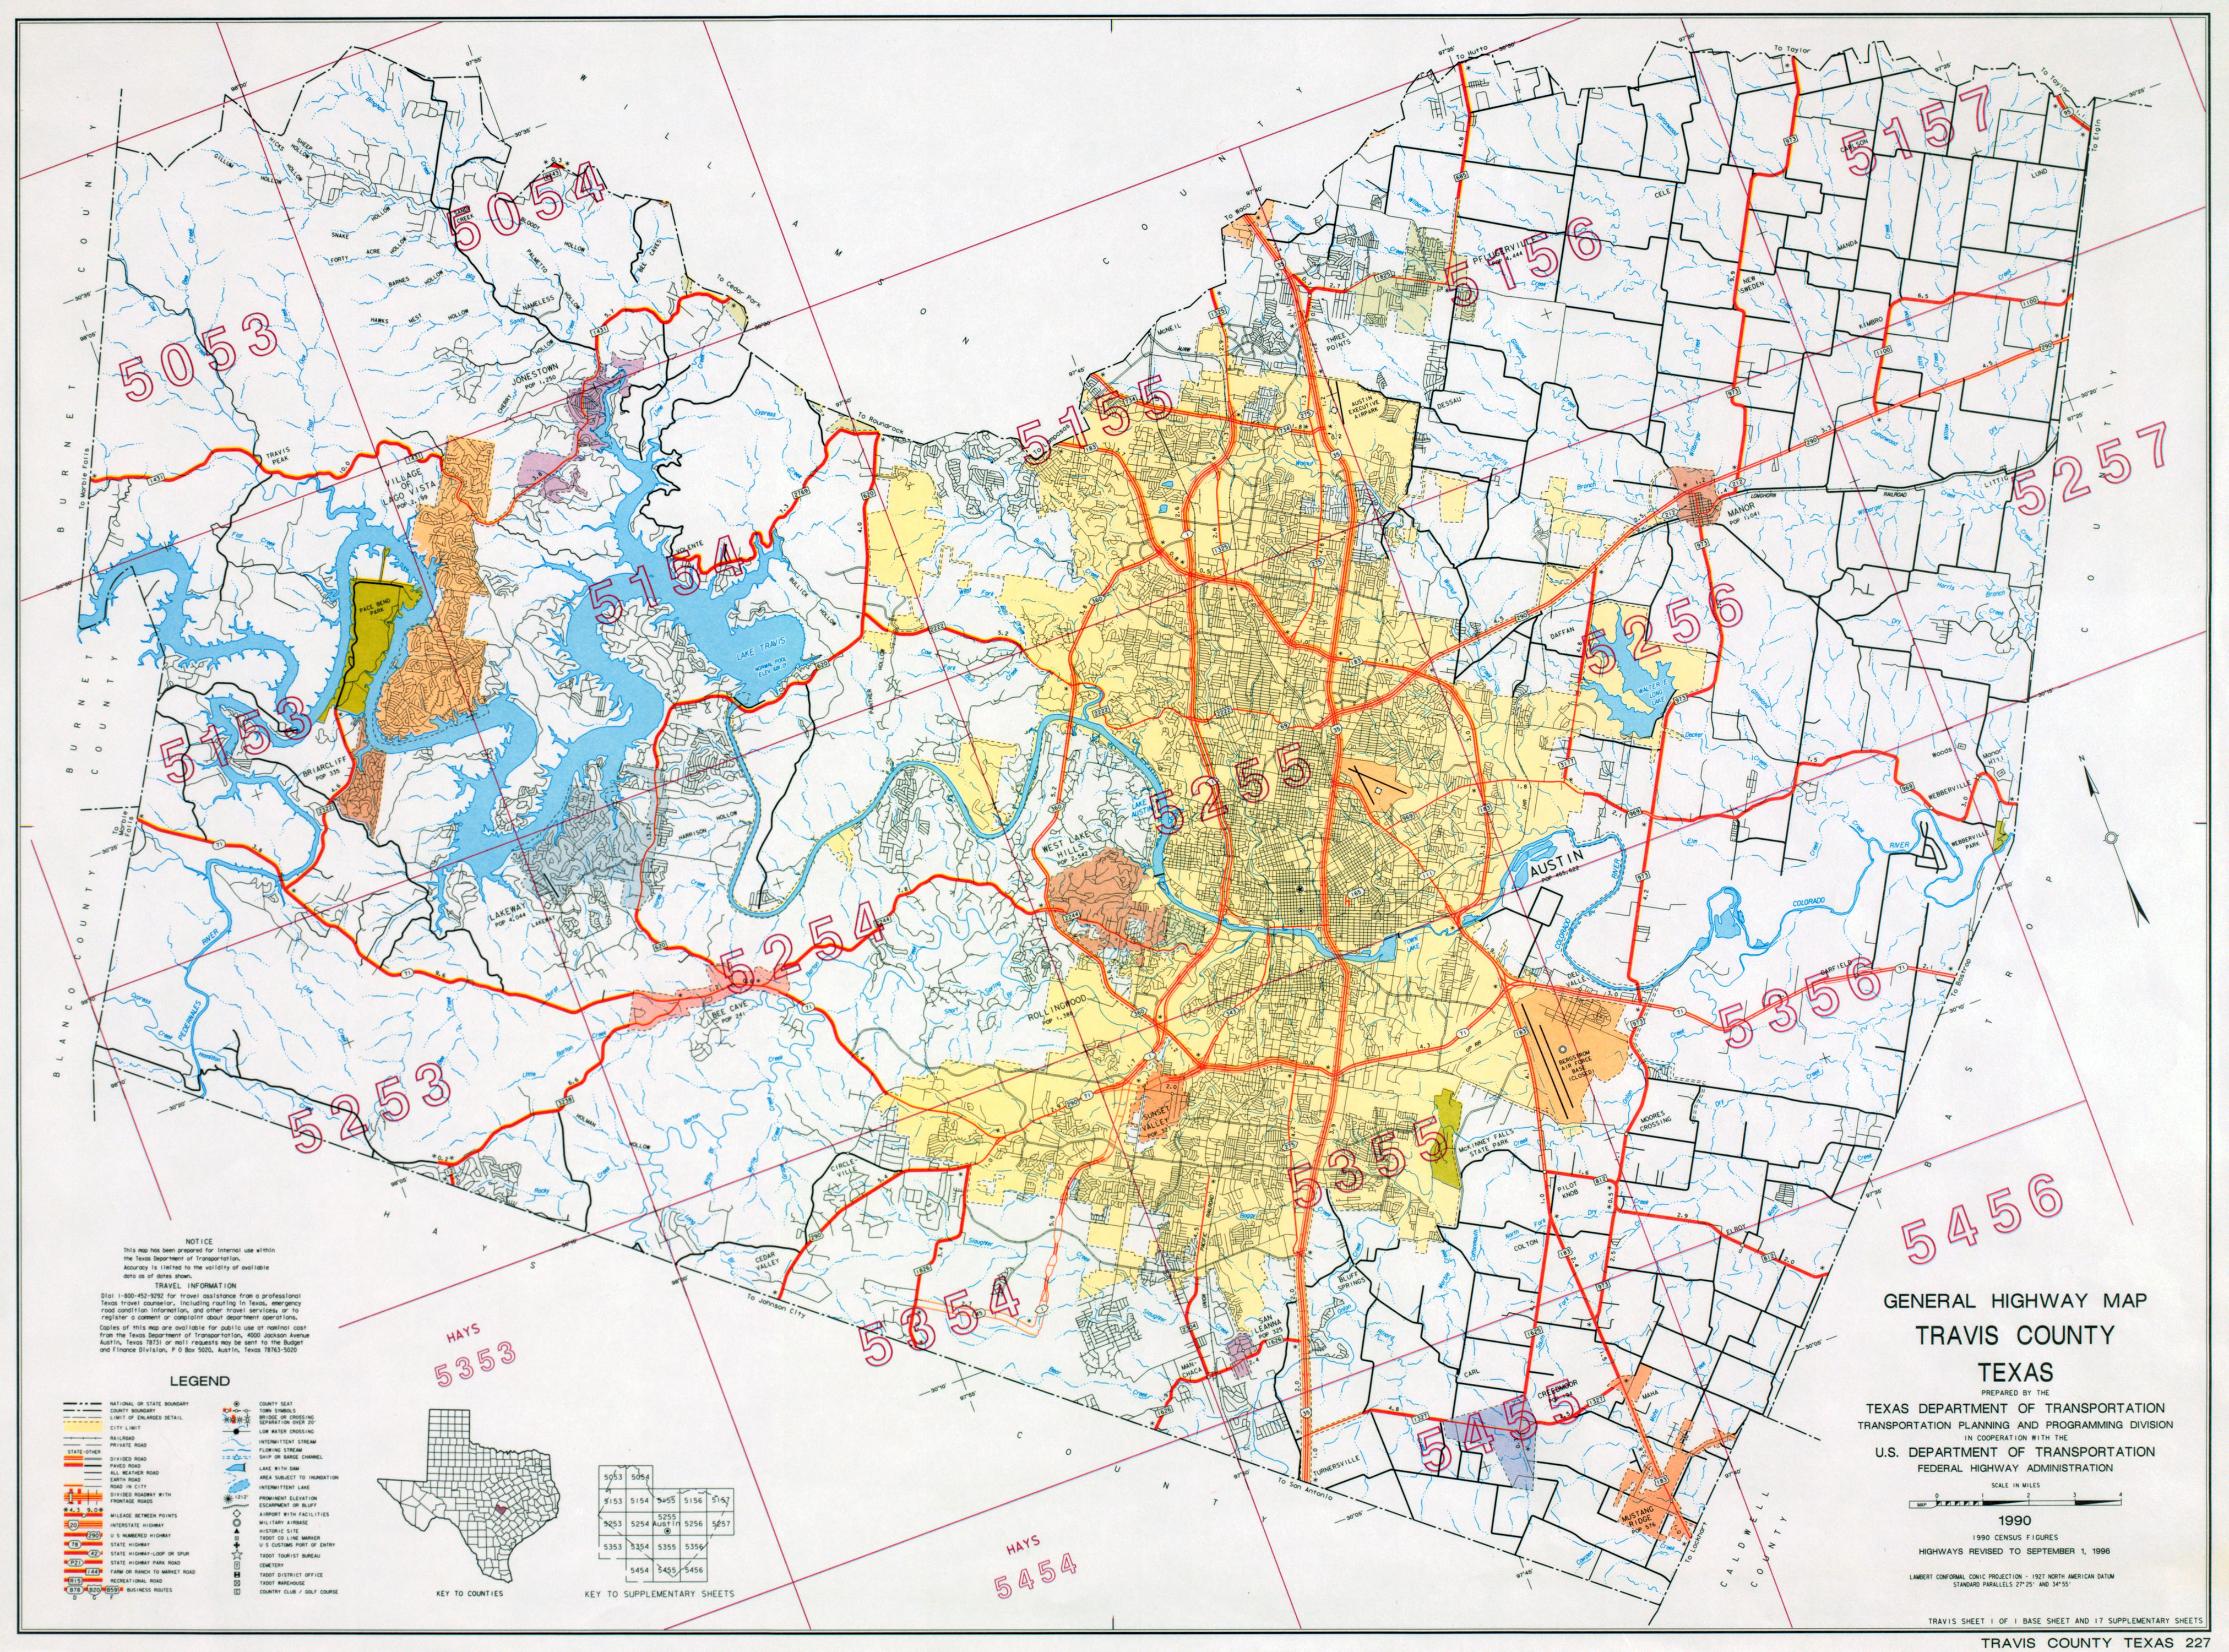 Austin, Texas Maps - Perry-Castañeda Map Collection - Ut Library Online - I 35 Central Texas Traffic Map